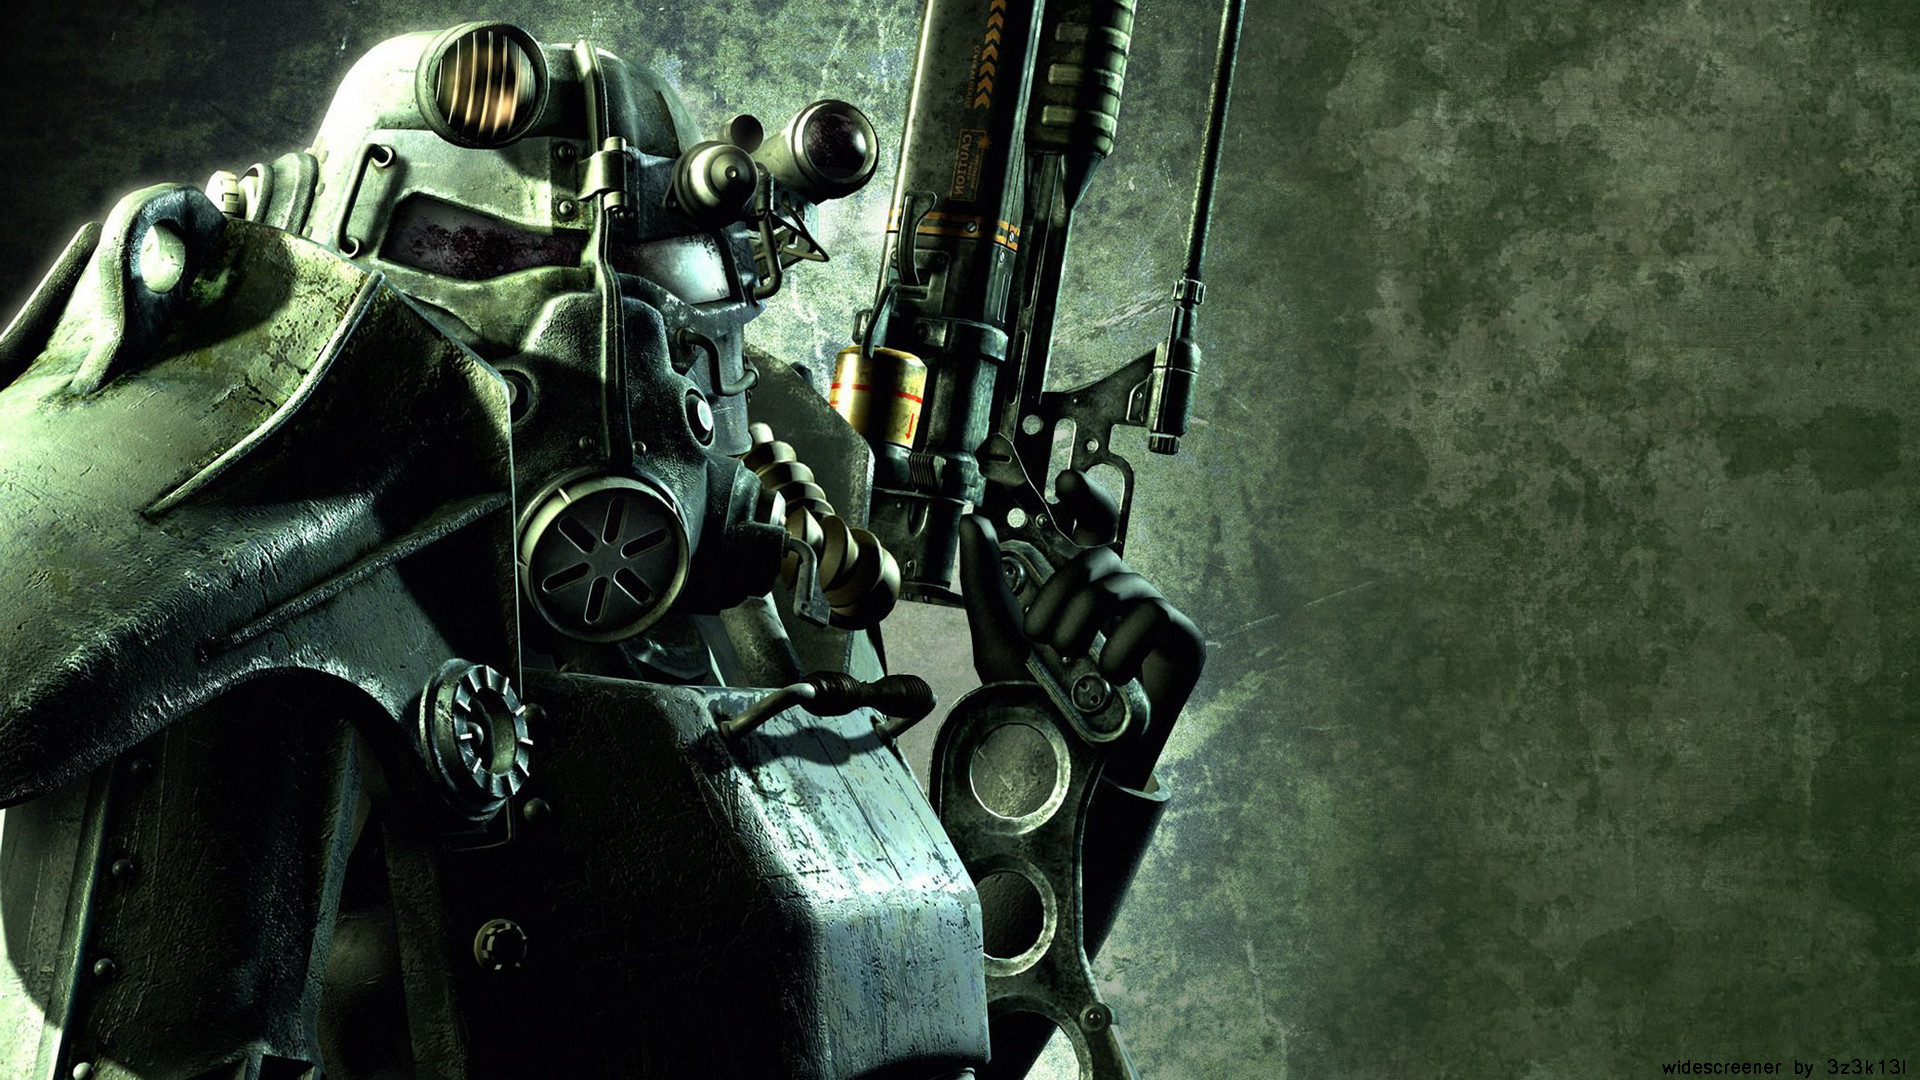 1920x1080 background desktops widescreen fallout wallpaper